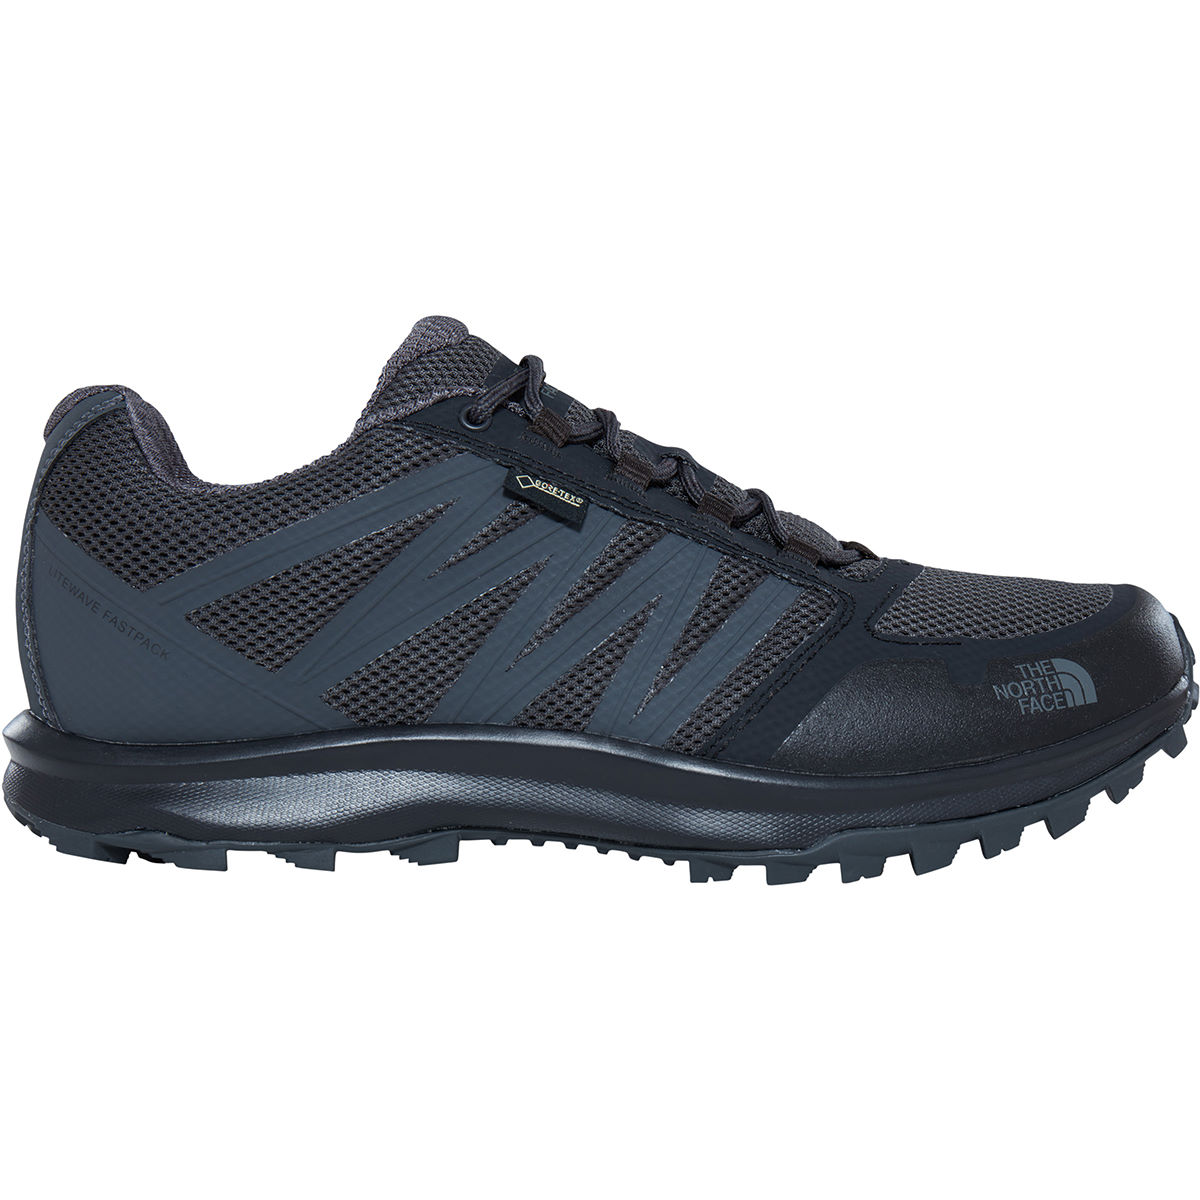 Chaussures The North Face Litewave Fastpack Gore-Tex - 9.5